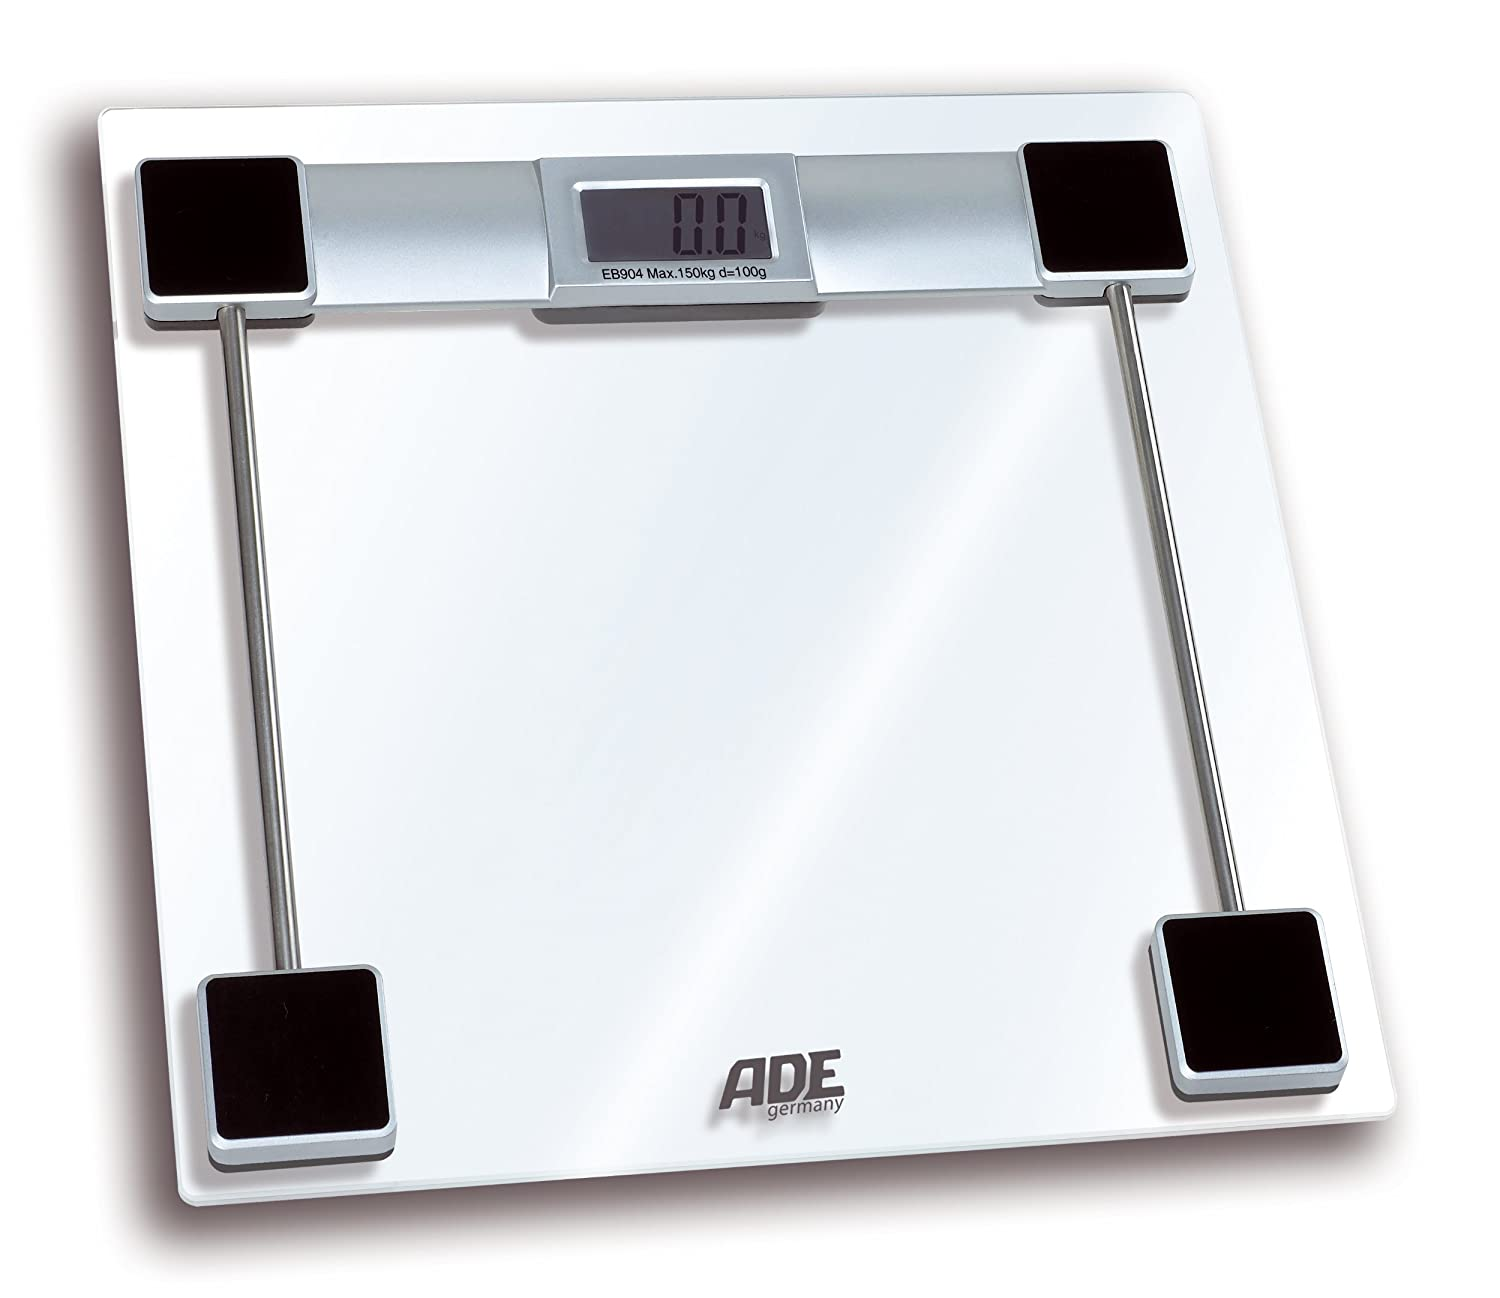 ADE Germany BE 824 Carla Electronic Bathroom Scale